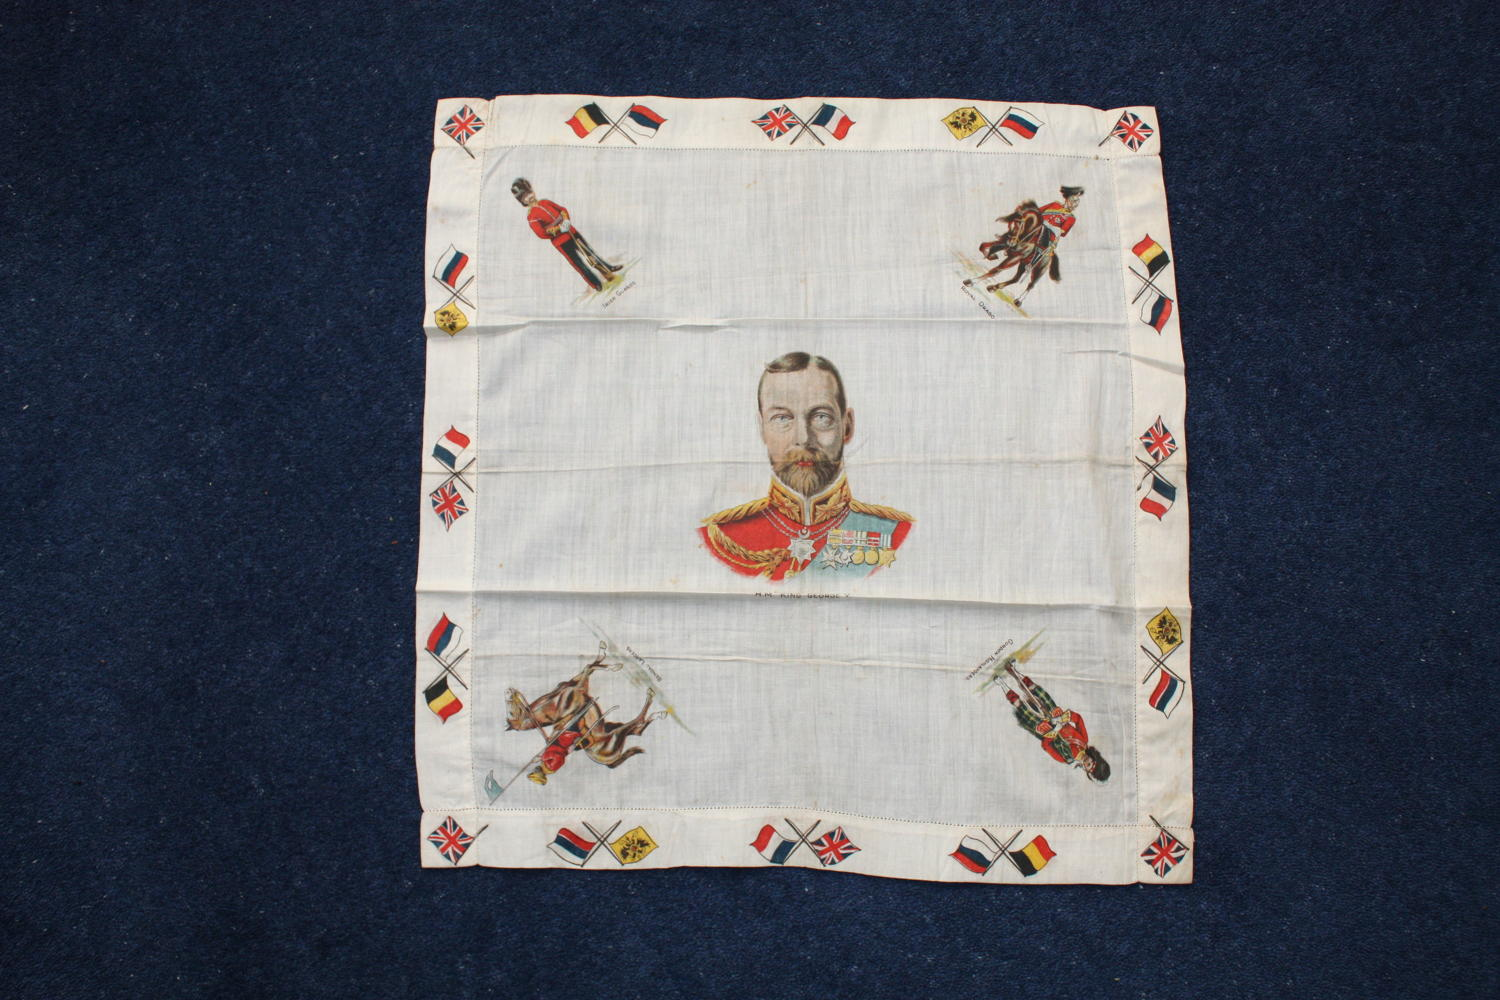 WW1 British Printed cotton handkerchief: King, flags & soldiers.